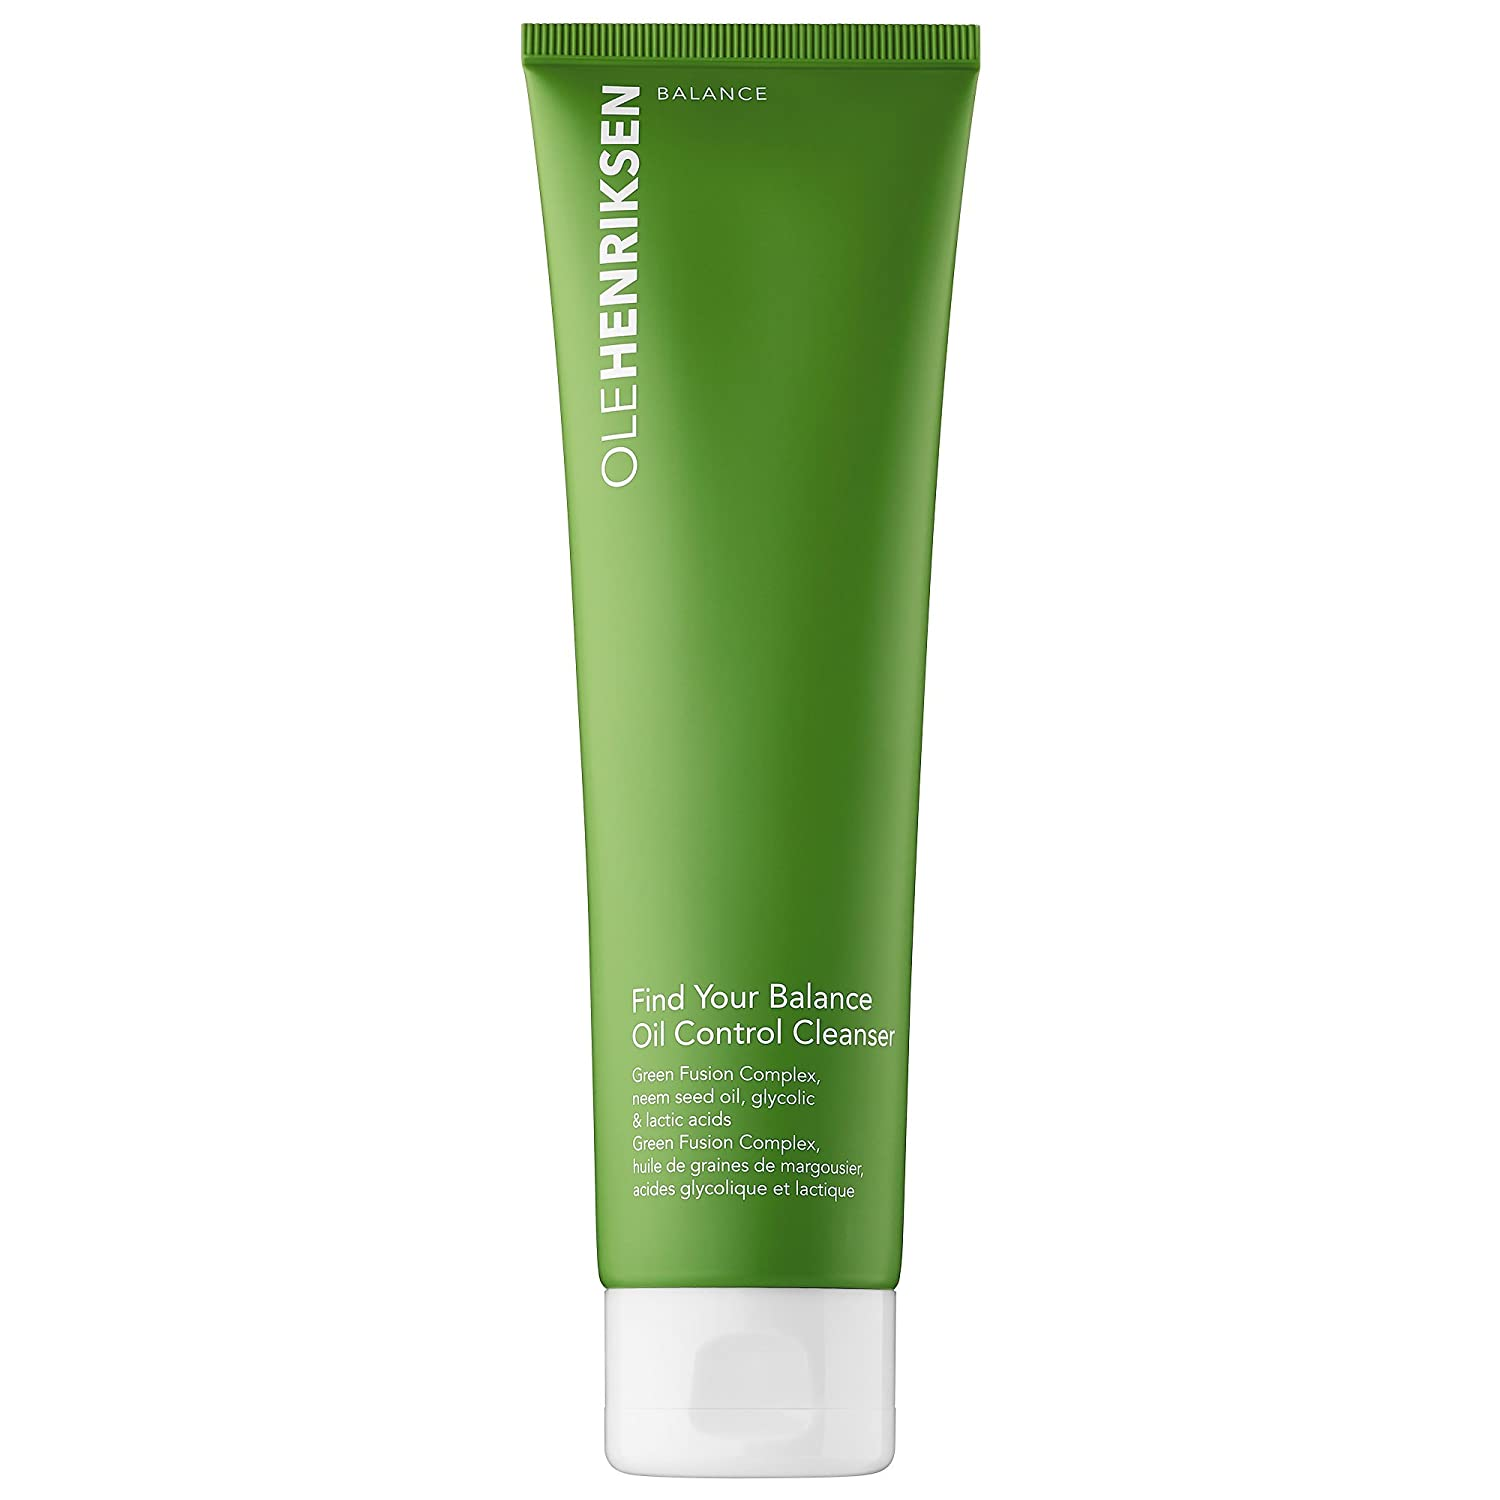 OLEHENRIKSEN Ole Henriksen Find Your Balance Oil Control Cleanser 5 oz/ 147 mL